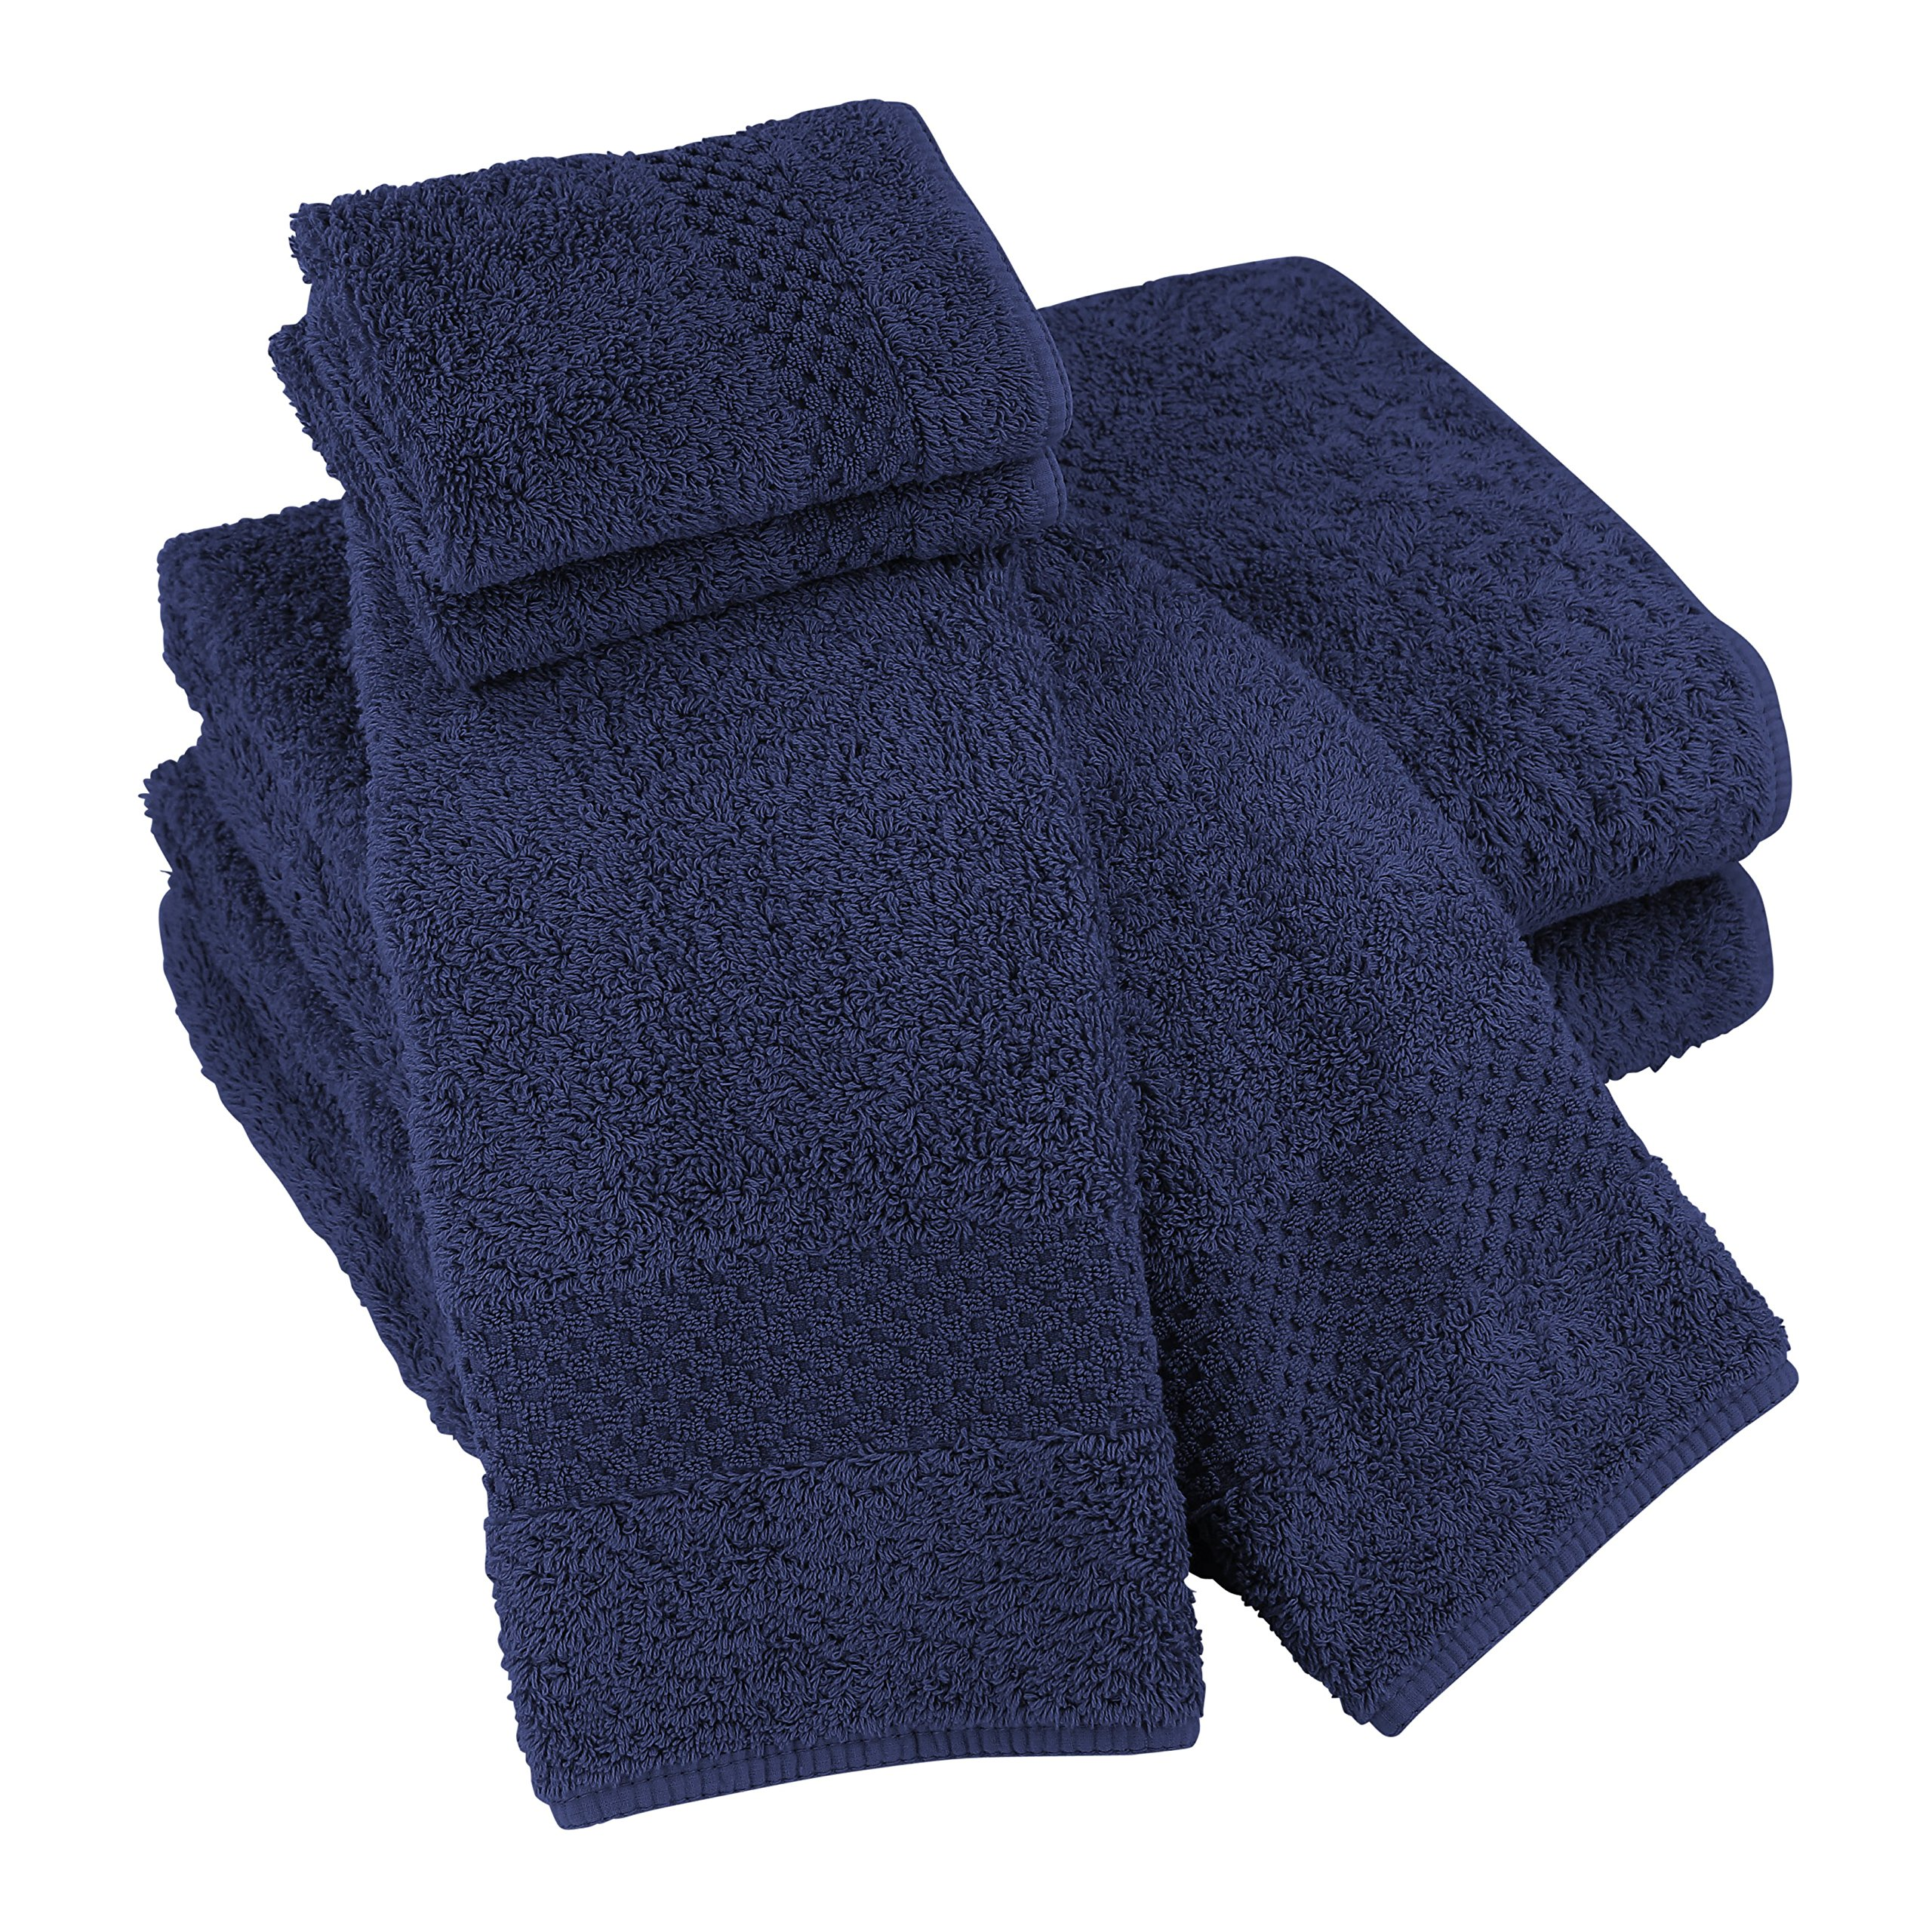 Luxor Linens Sylvano Hotel 100% Giza Combed Egyptian Cotton 700 GSM Luxury Solid 6-Piece Spa Towel Sets - Durable, Plush & Absorbent - Made in Portugal - 15 Colors Available - Navy by Luxor Linens